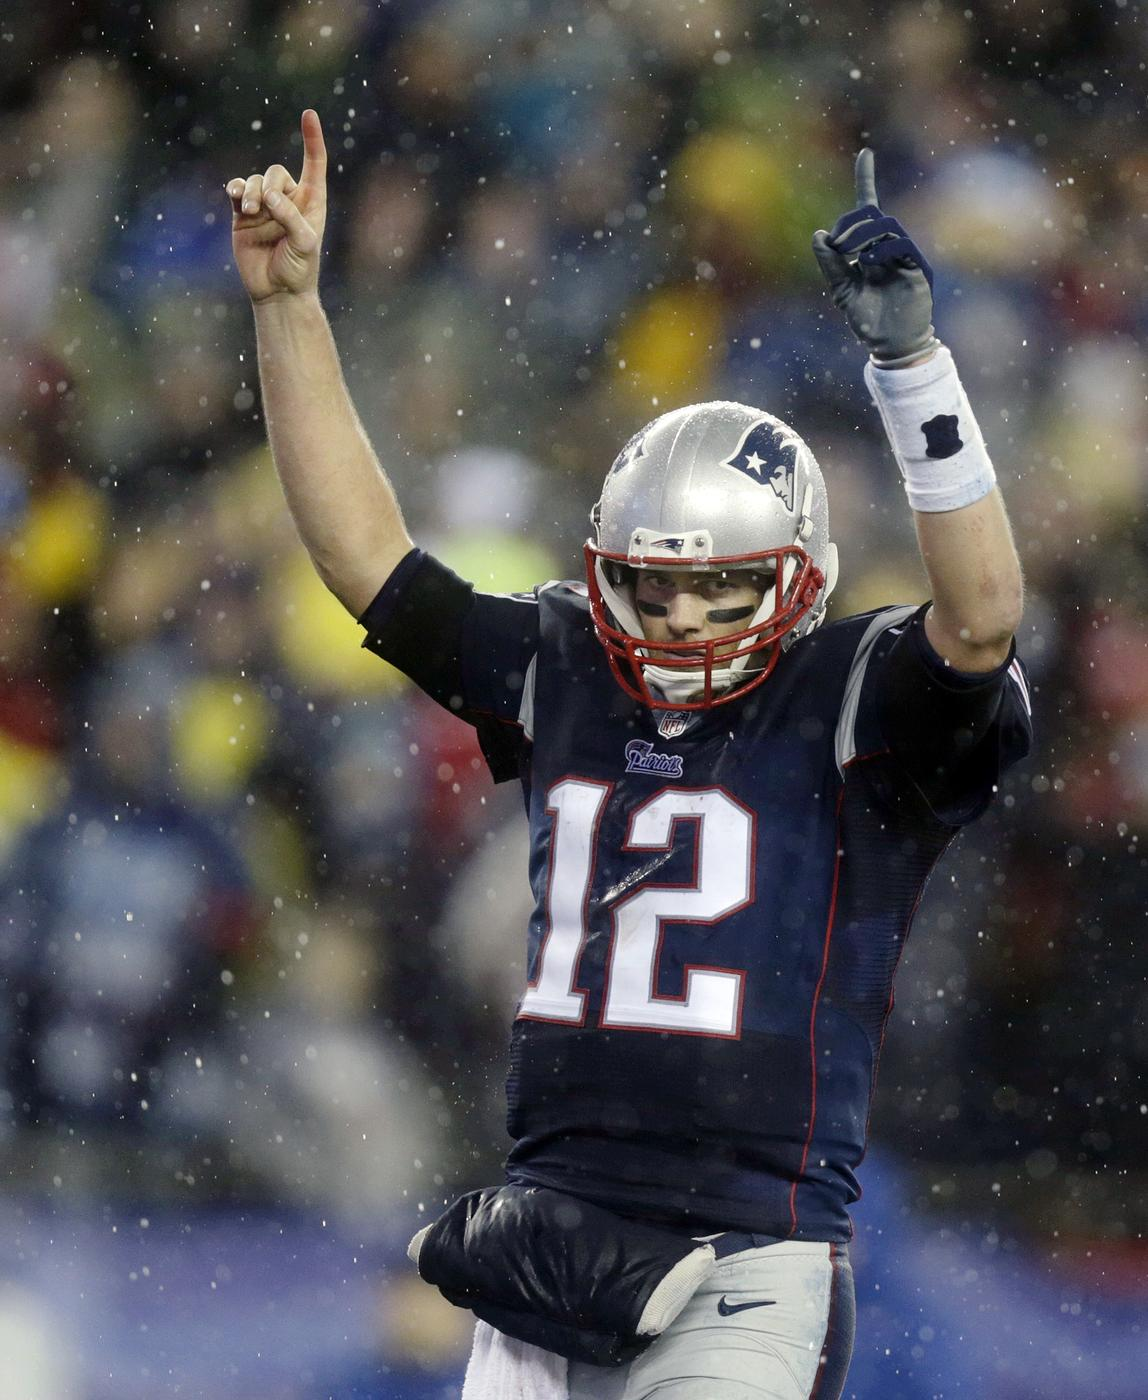 Tom Brady looking to build on his legacy by leading New England Patriots to Super Bowl XLIX win over Seattle Seahawks